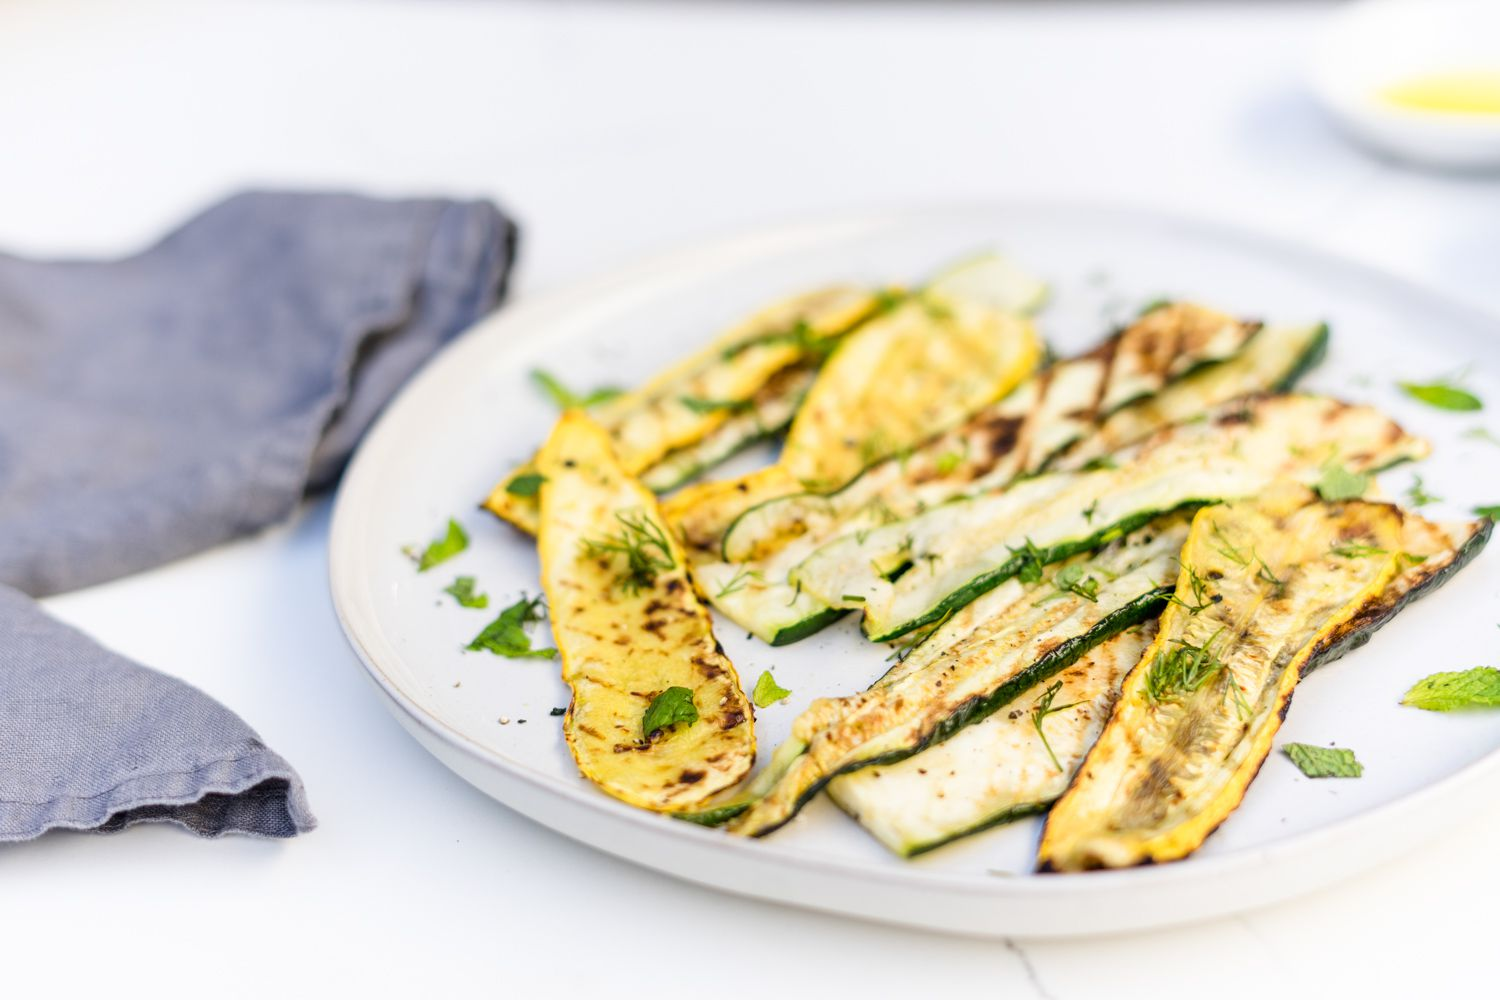 Grilled zucchini and squash on a white dinner plate